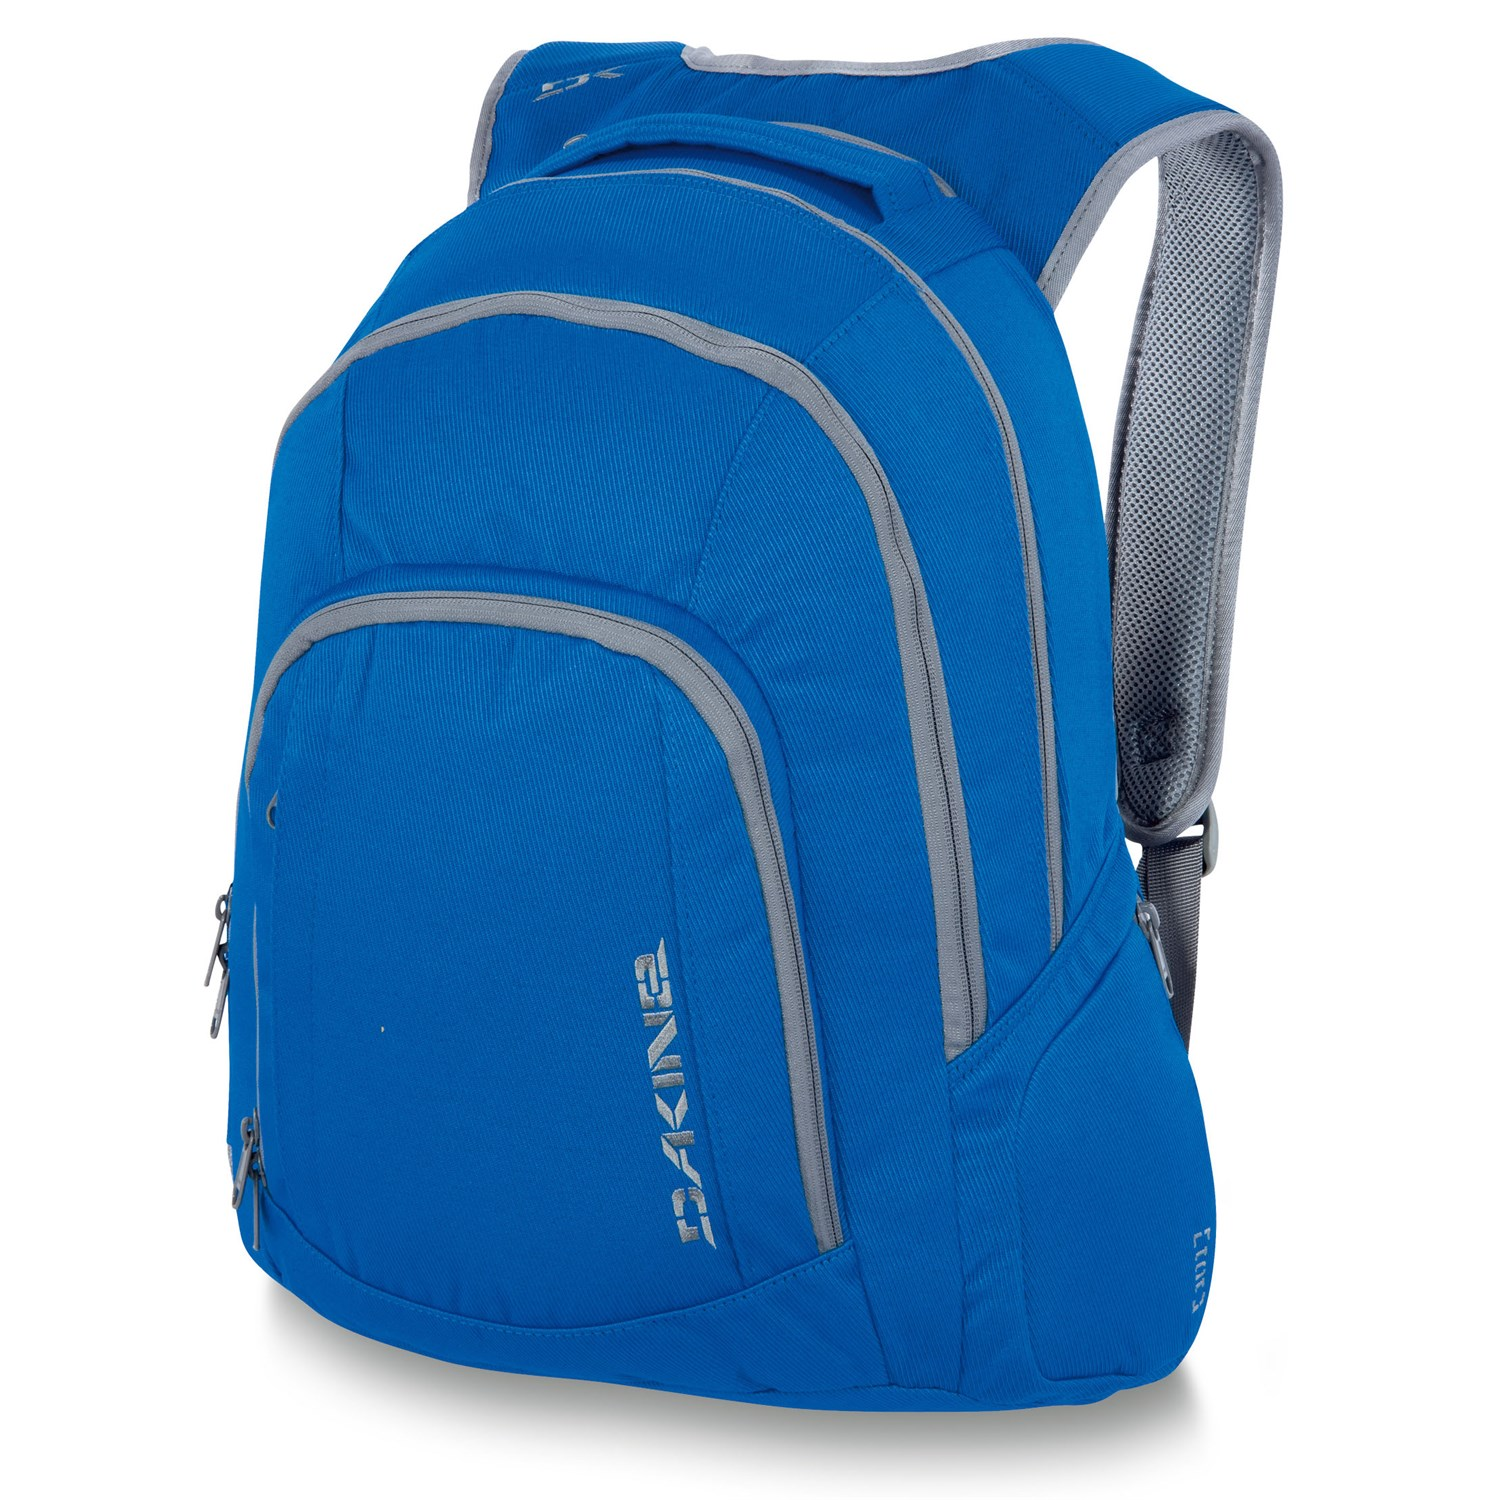 DaKine 101 Backpack | evo outlet